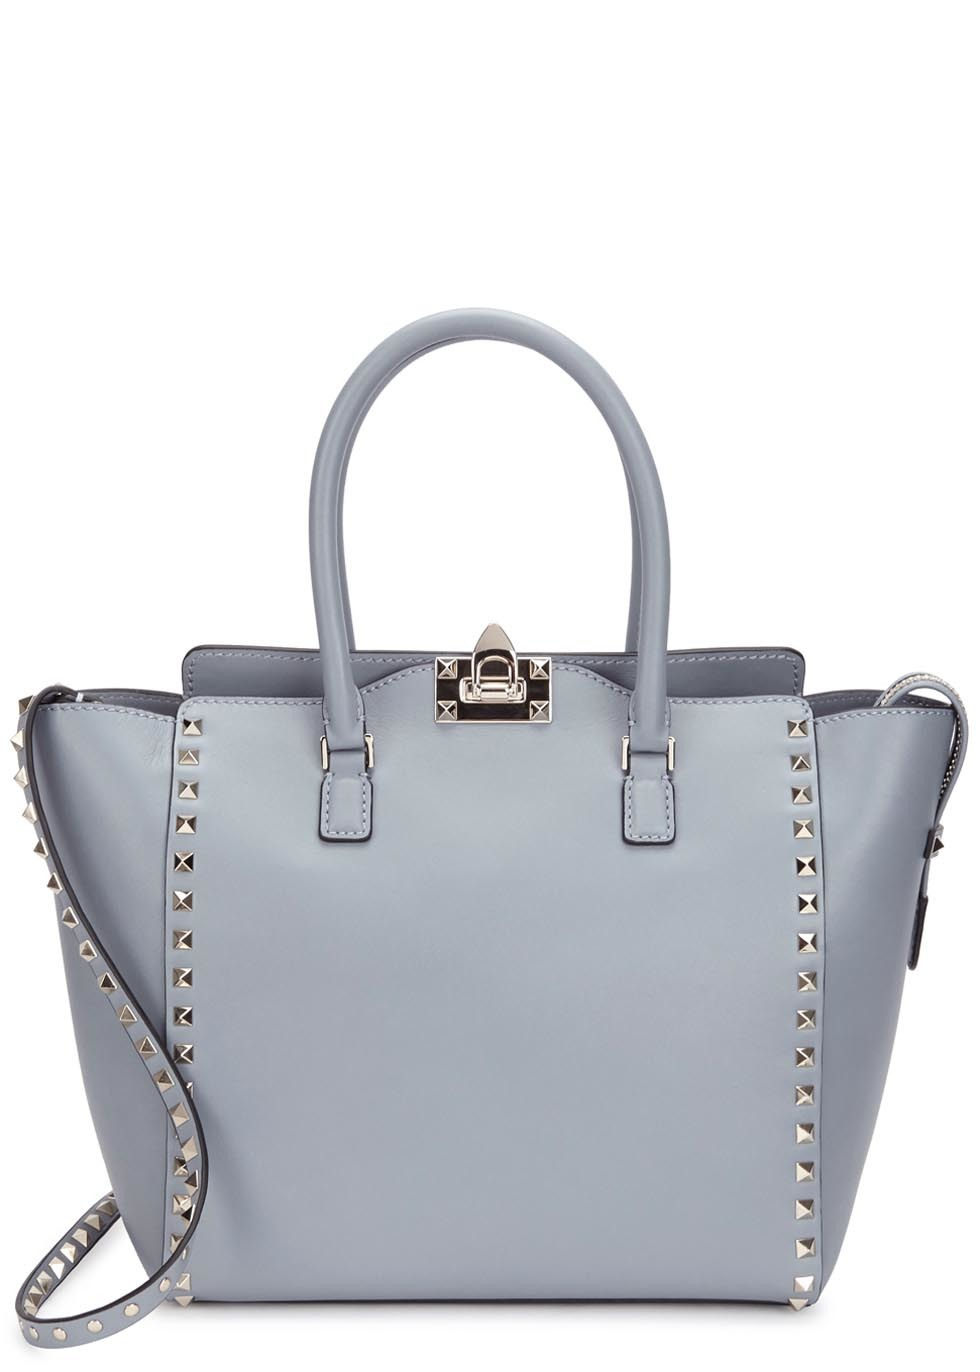 Rockstud Grey Leather Tote - secondary colour: gold; predominant colour: light grey; occasions: casual, creative work; type of pattern: standard; style: tote; length: handle; size: standard; material: leather; pattern: plain; finish: plain; season: a/w 2015; wardrobe: investment